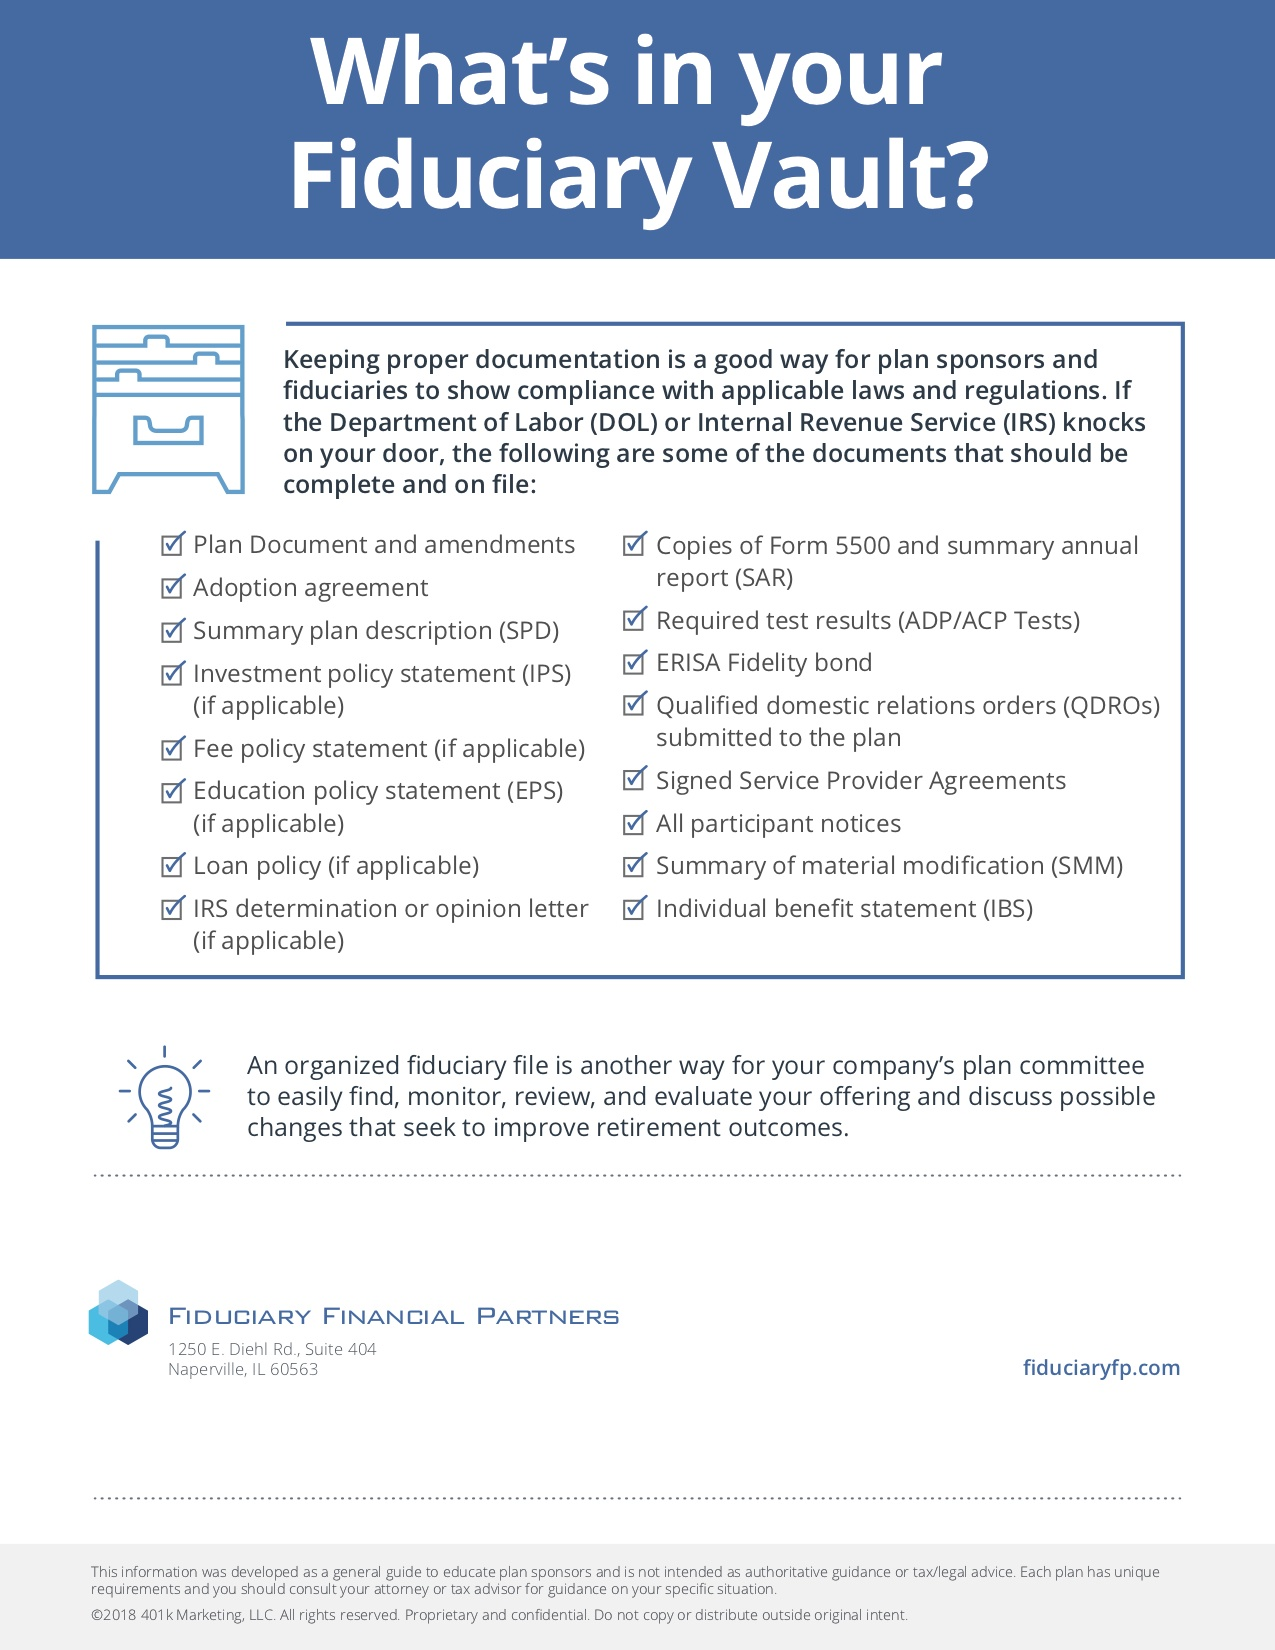 what's in your fiduciary vault